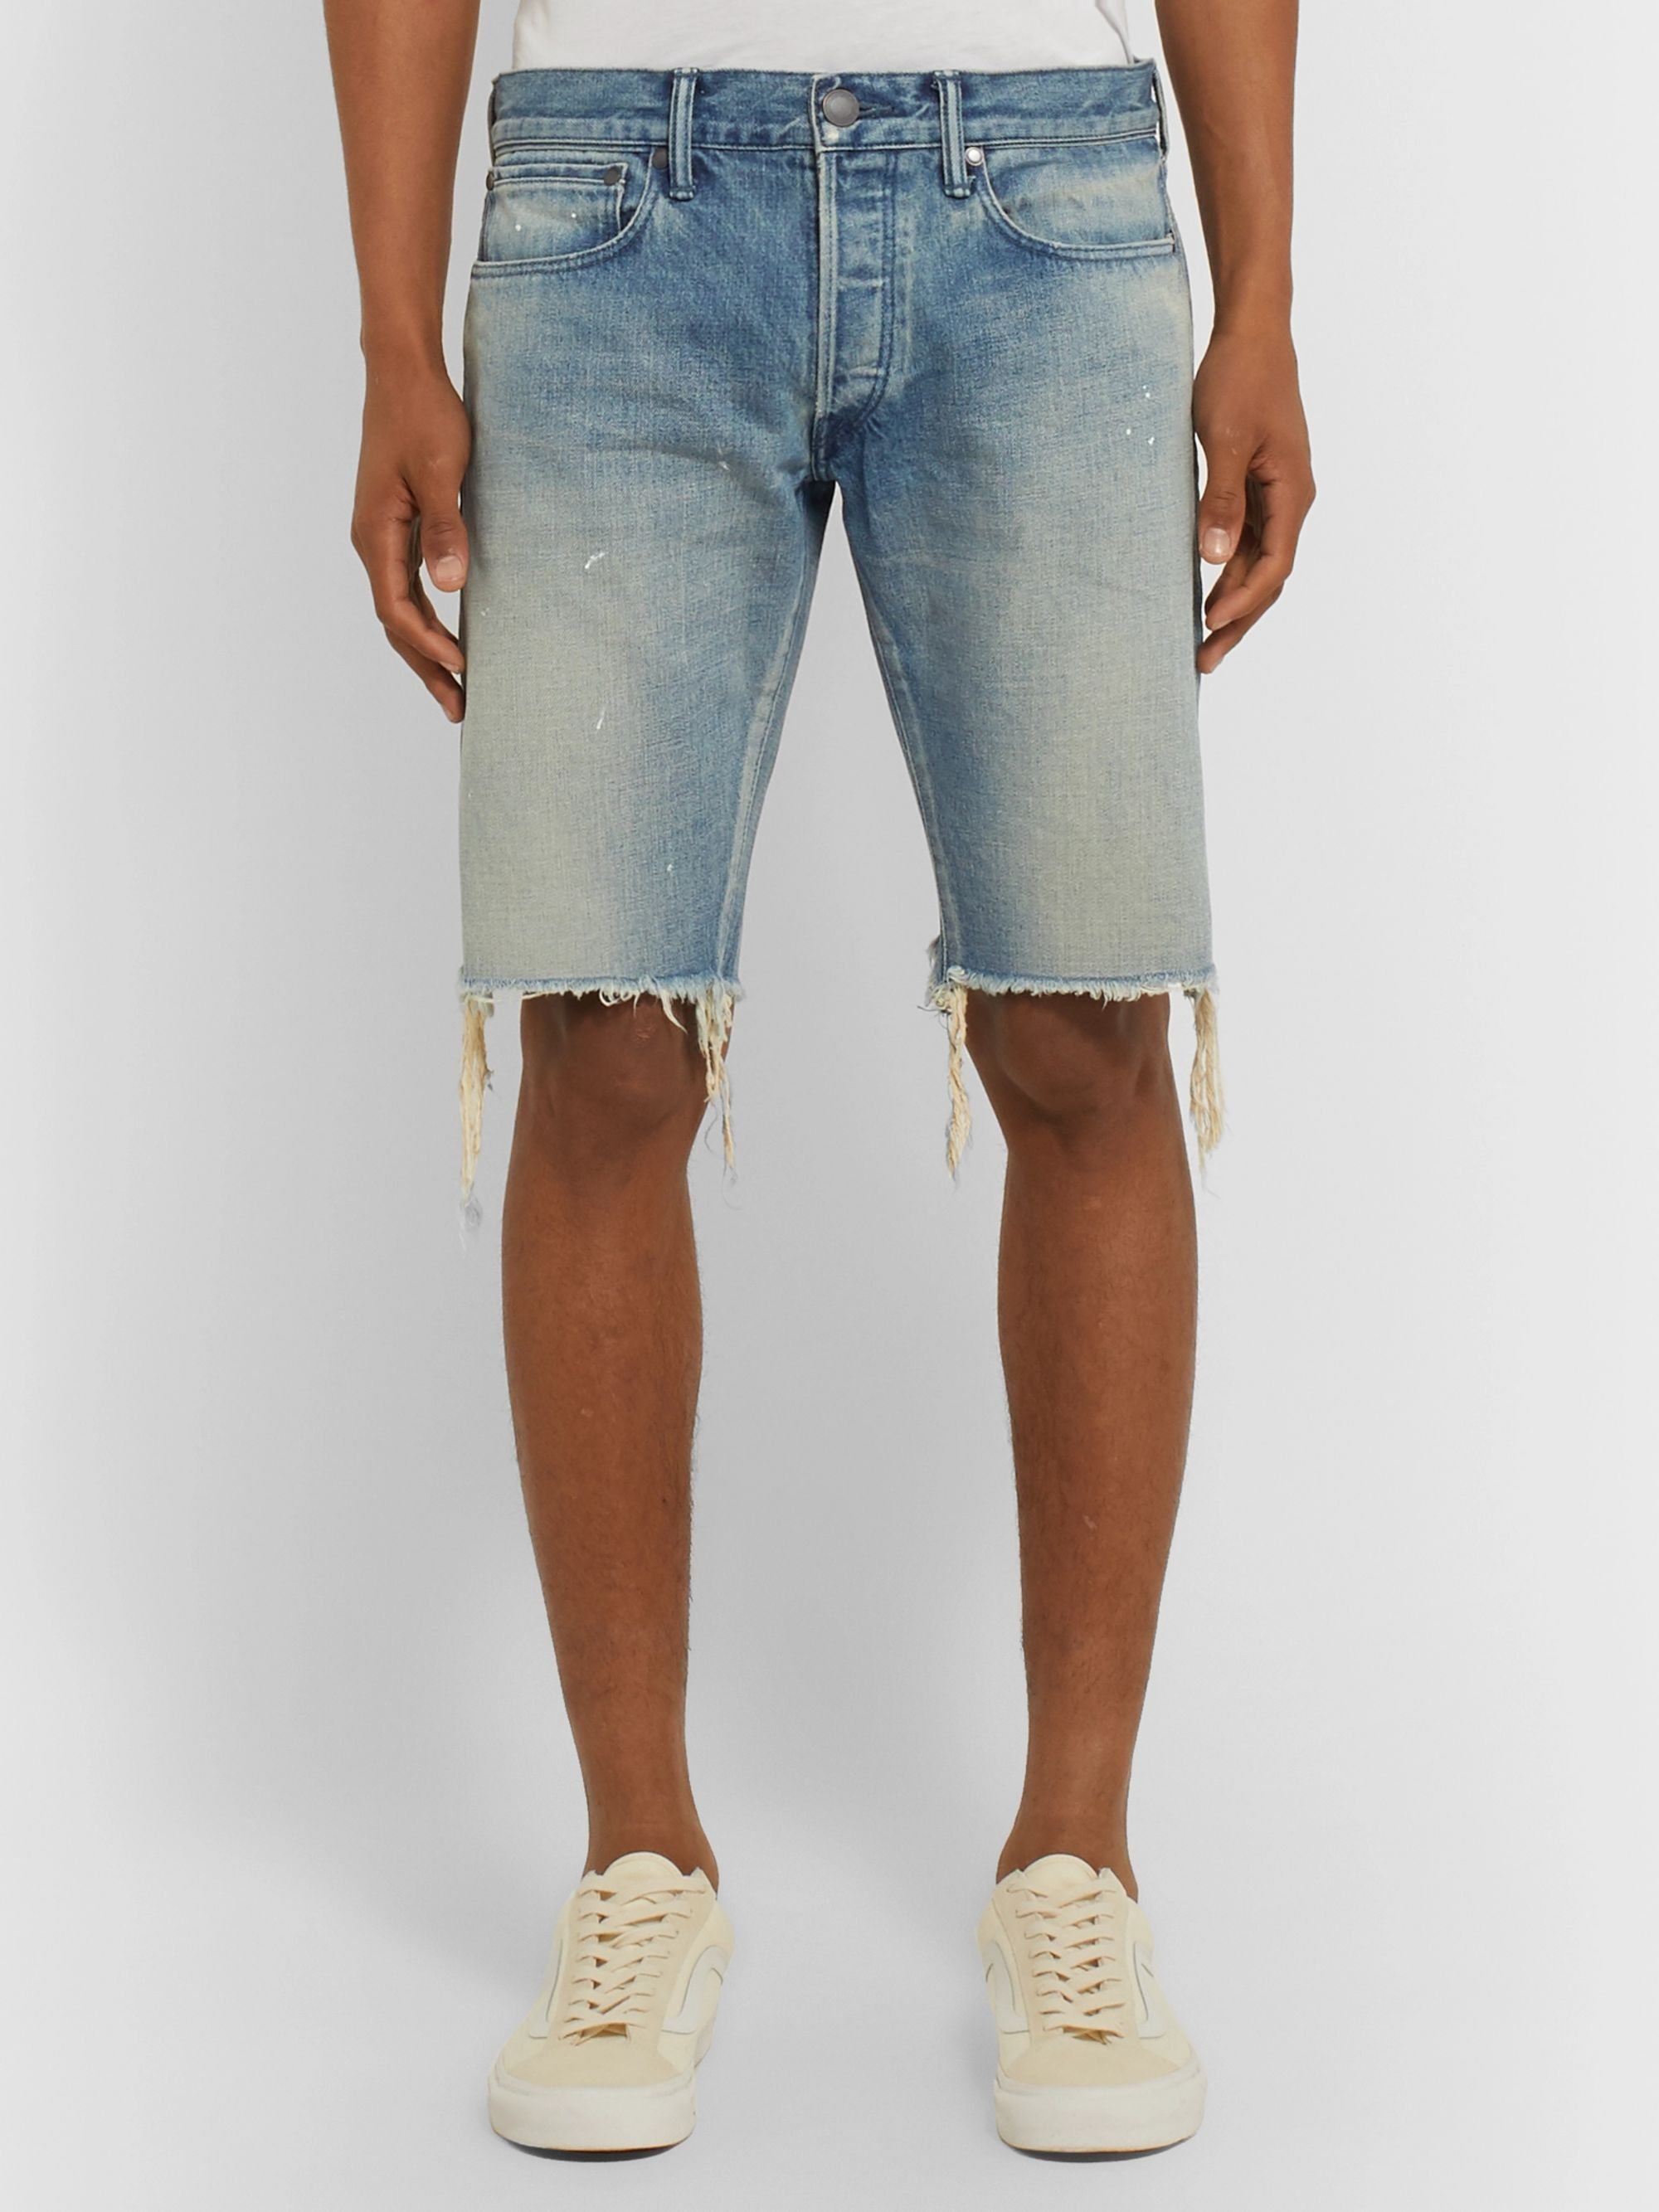 John Elliott The Cast 2 Slim-Fit Distressed Denim Shorts